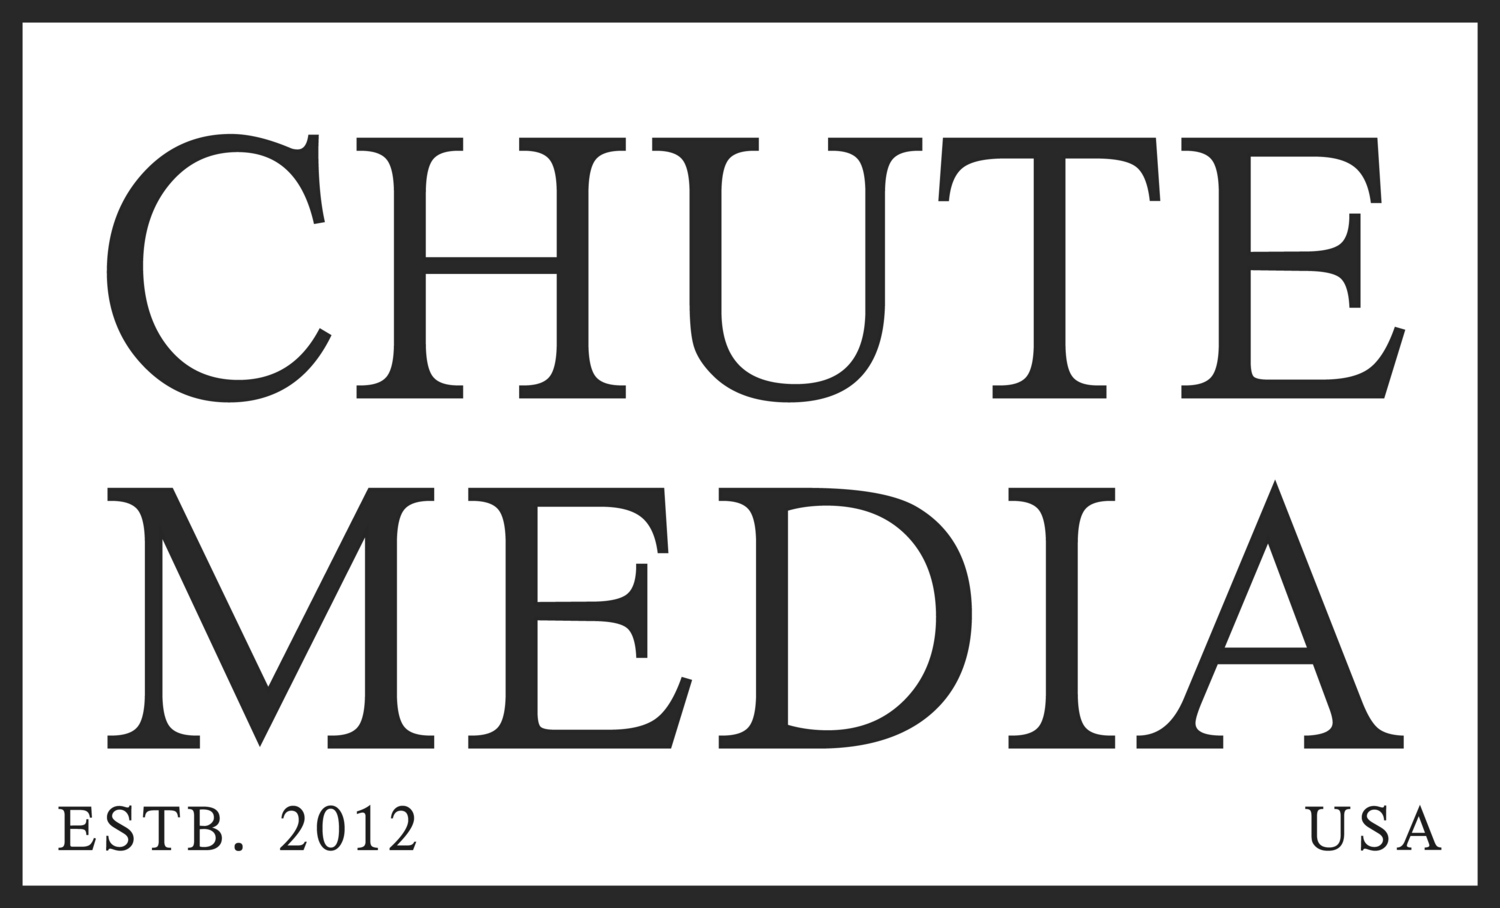 Chute Media | Montana Film & Video Production, Digital Media